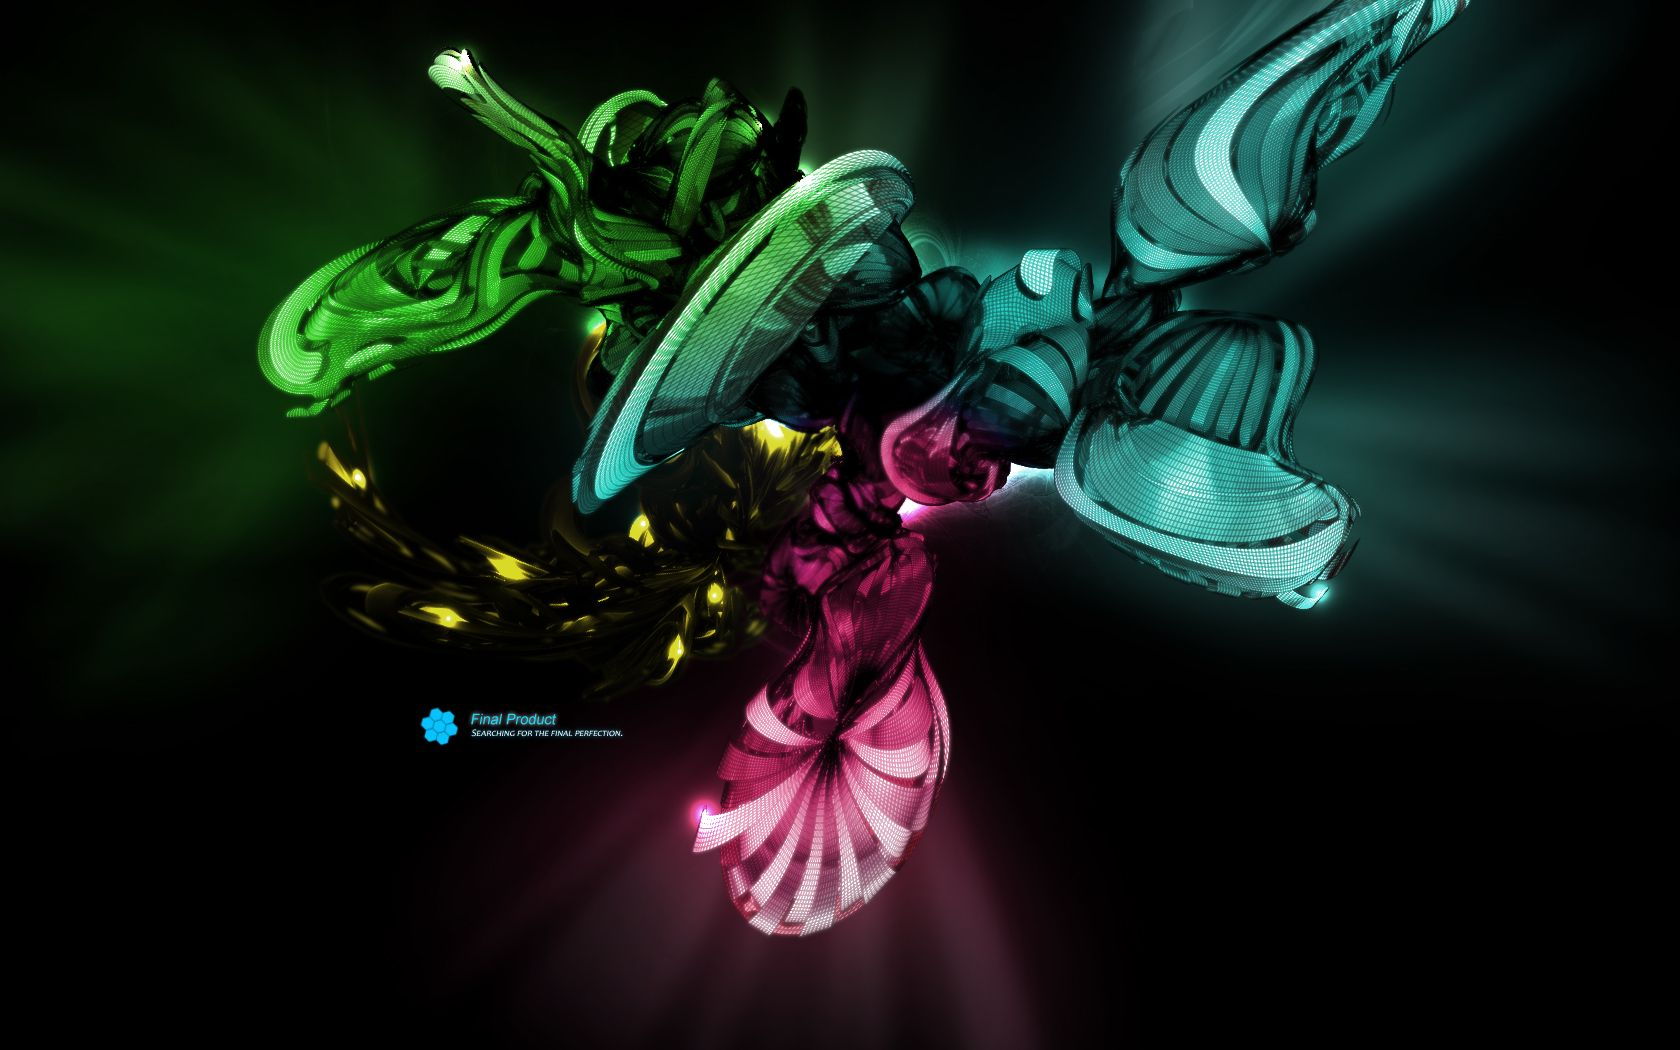 1680x1050 ANIME PICTURES: Abstract Wallpapers 3D abstract wallpaper ...